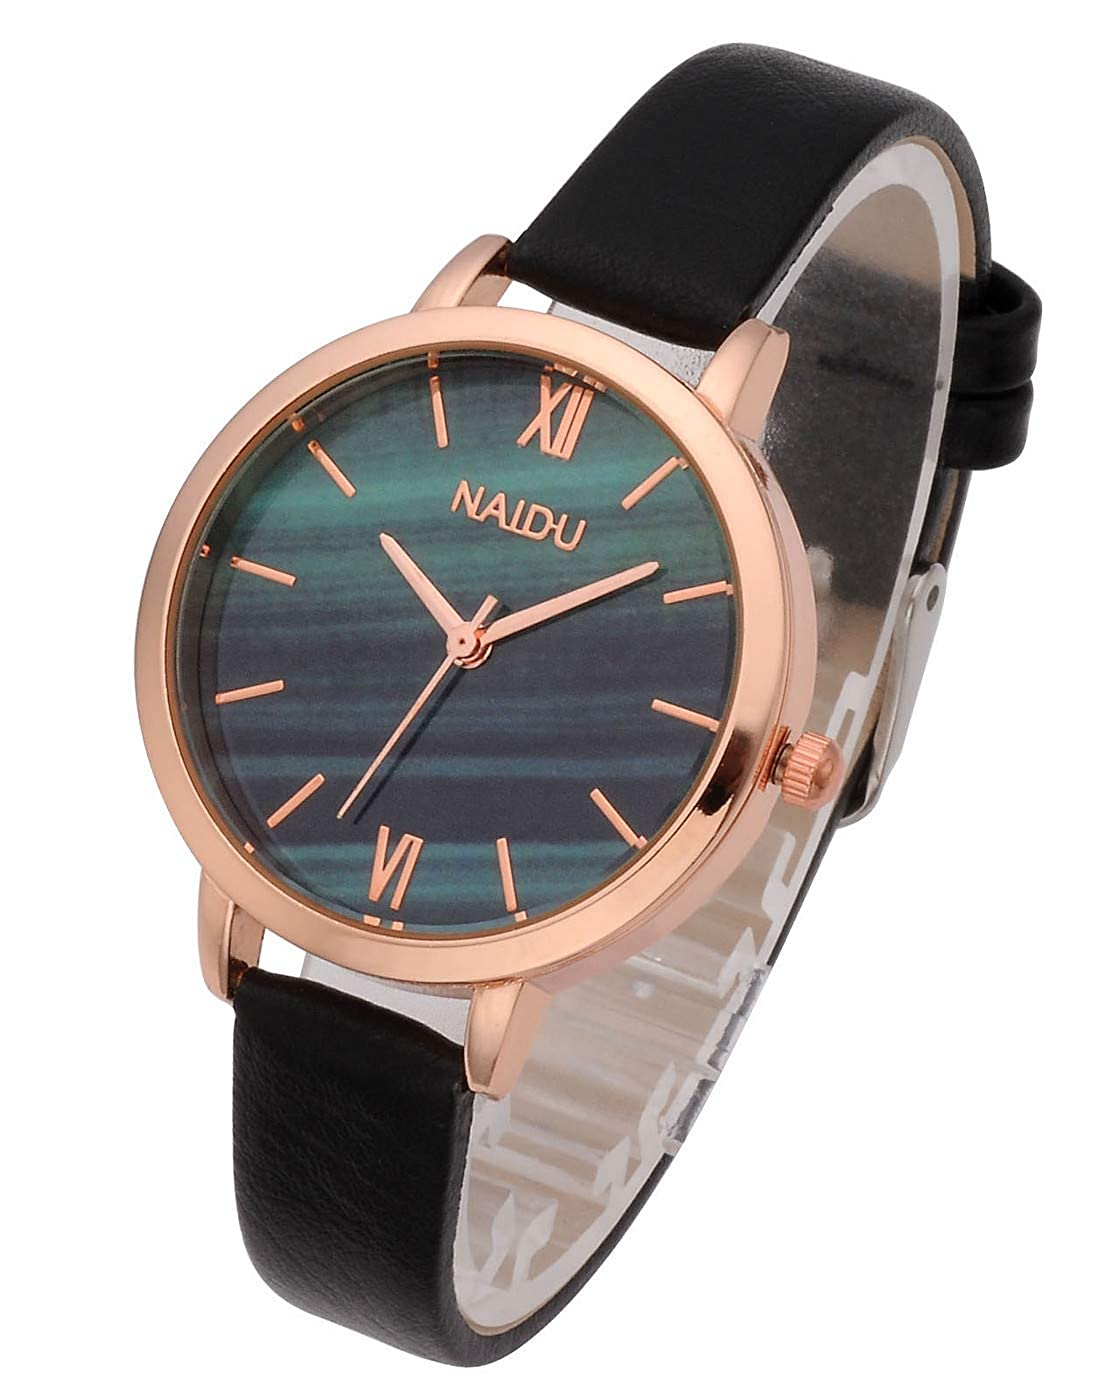 Amazon.com: Top Plaza Women Girls Thin Leather Wrist Watch Fashion Unique Rose Gold Case Marbled Roman Numerals Dial Analog Quartz Watches Blue Gray Dial: ...